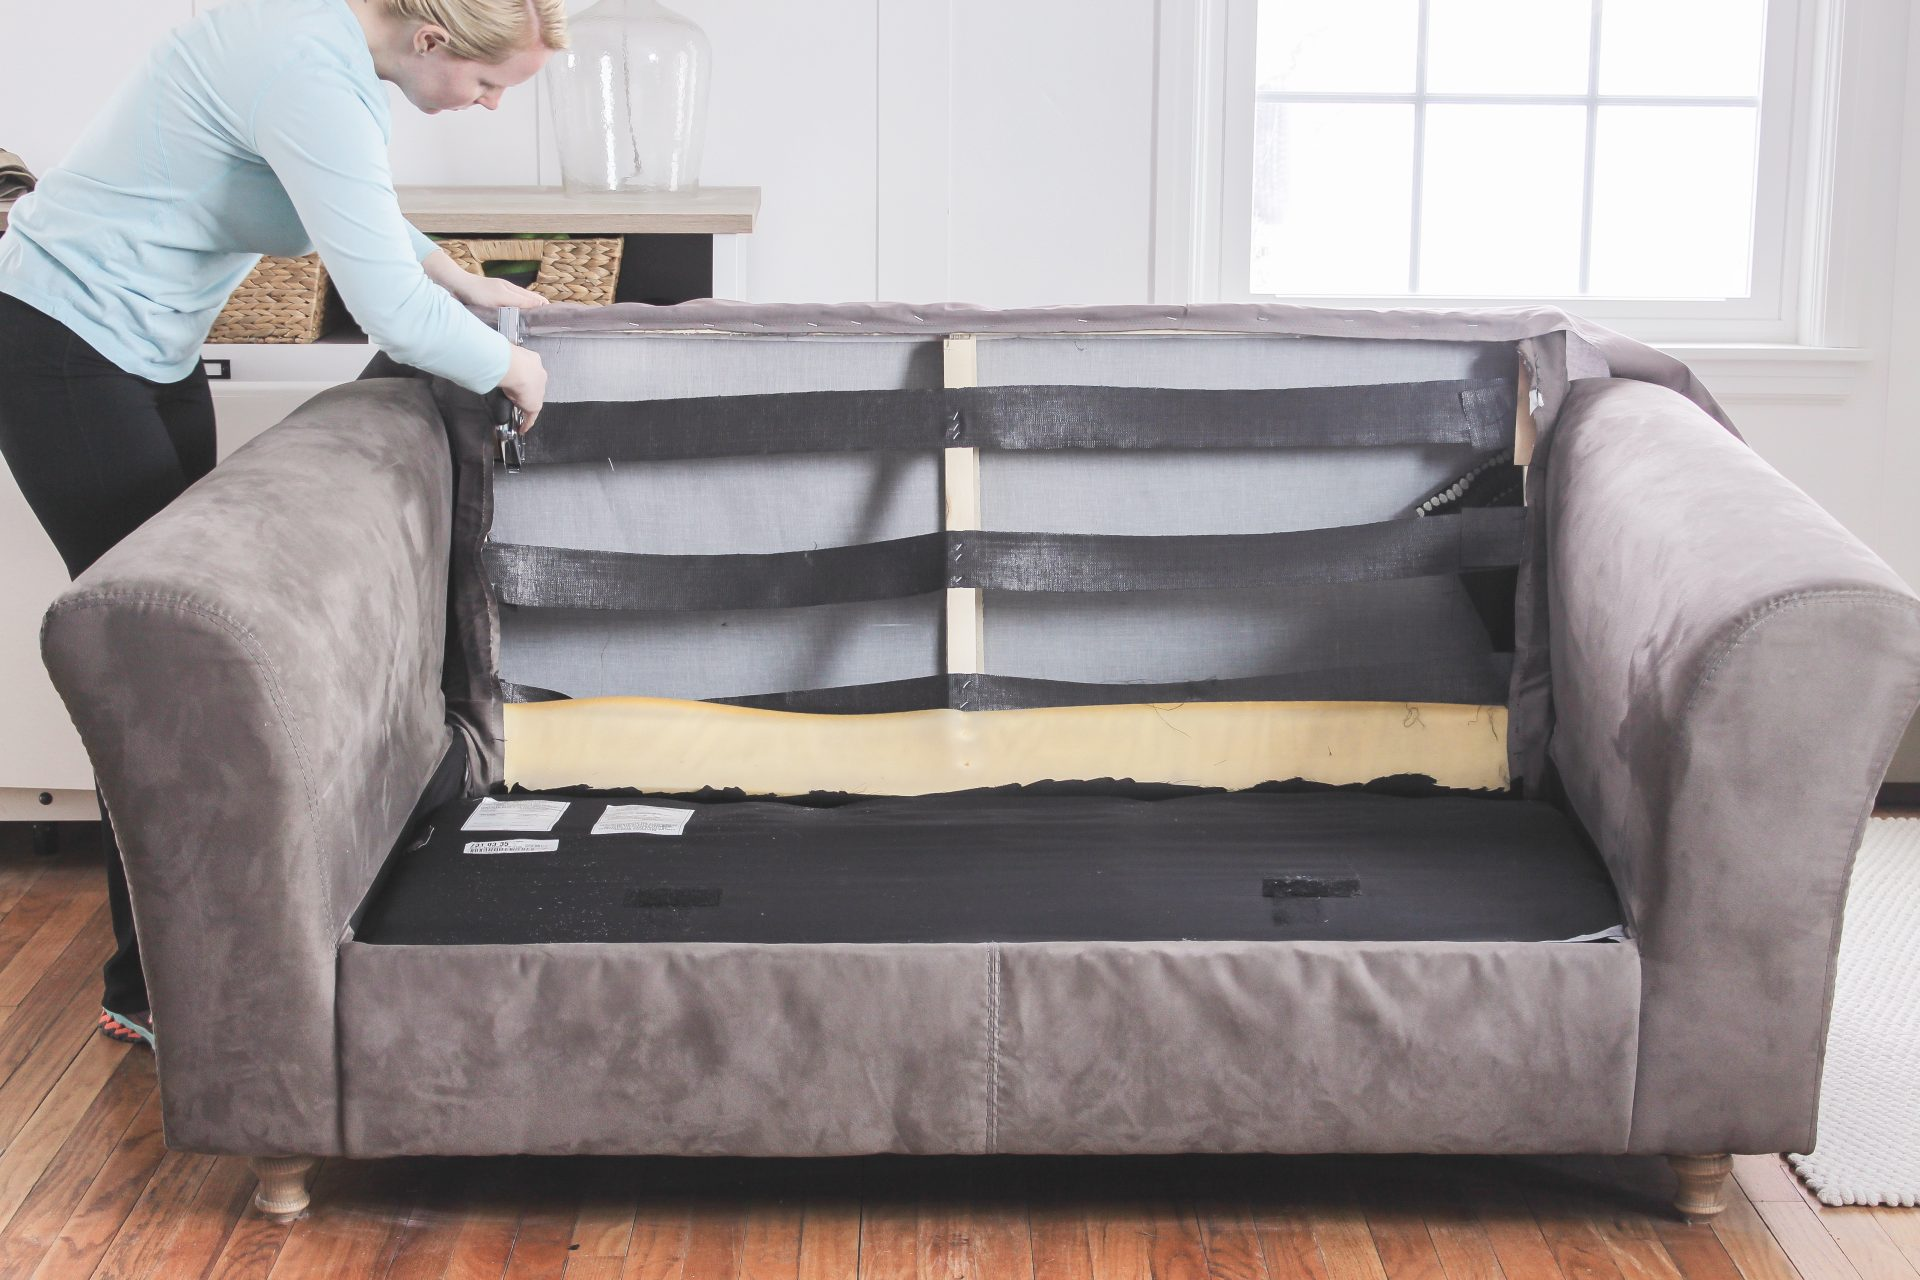 How To Fix A Sagging Couch Re, How To Repair Sofa Pillows